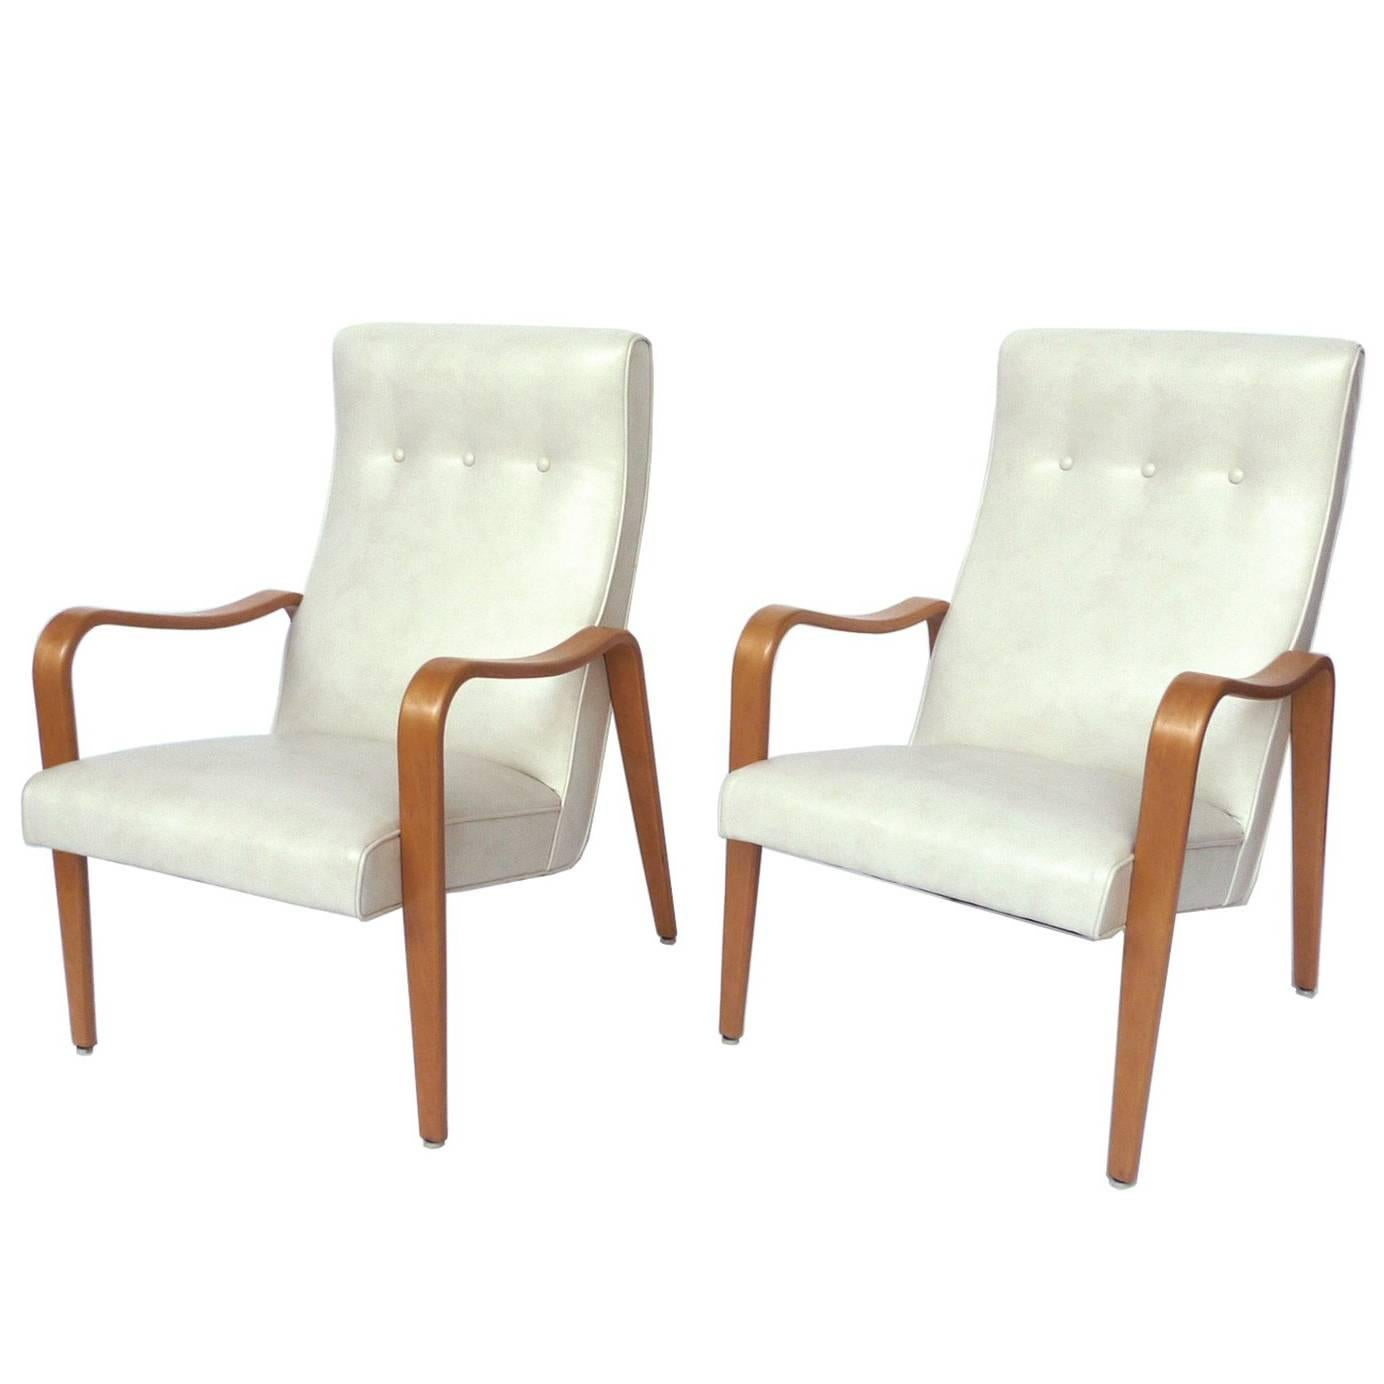 Bentwood chairs white conference no18 steel cabaret for Bentwood kitchen cabinets